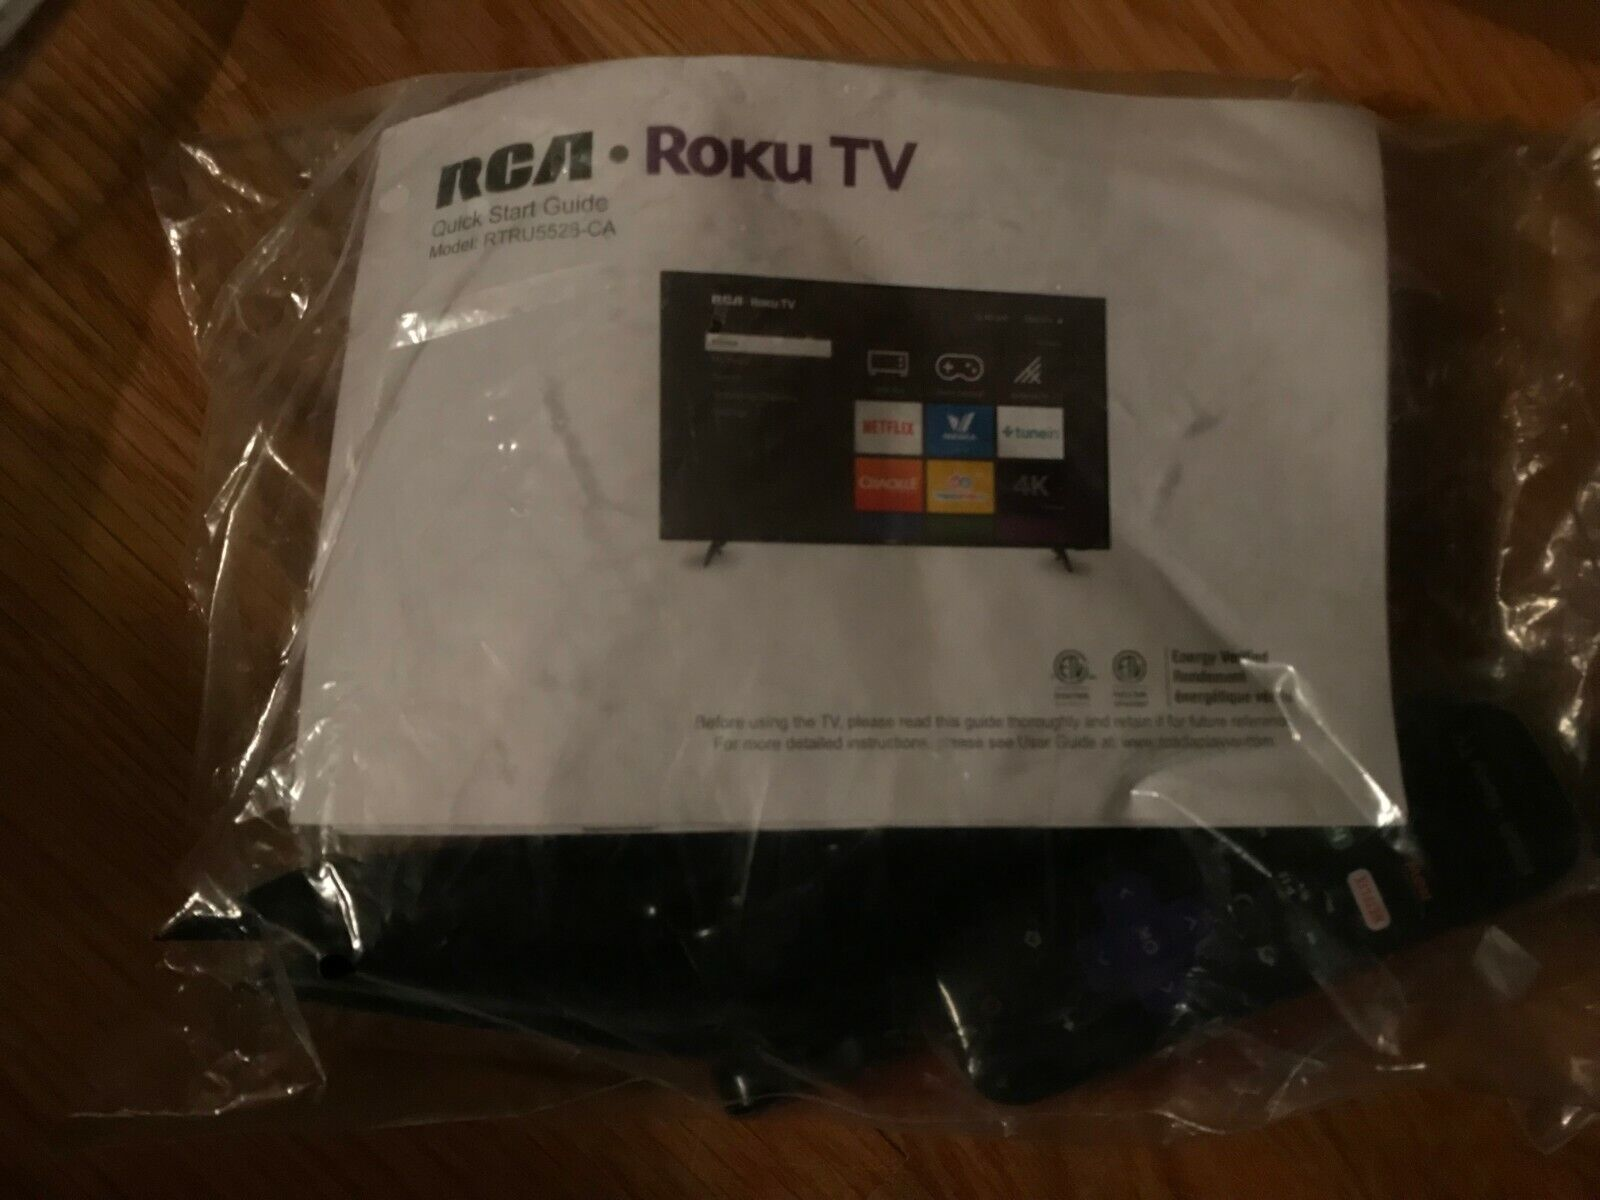 RCA Roku TV Remote RTRU5528-CA With Quick Start Guide Manual, Mounts and More